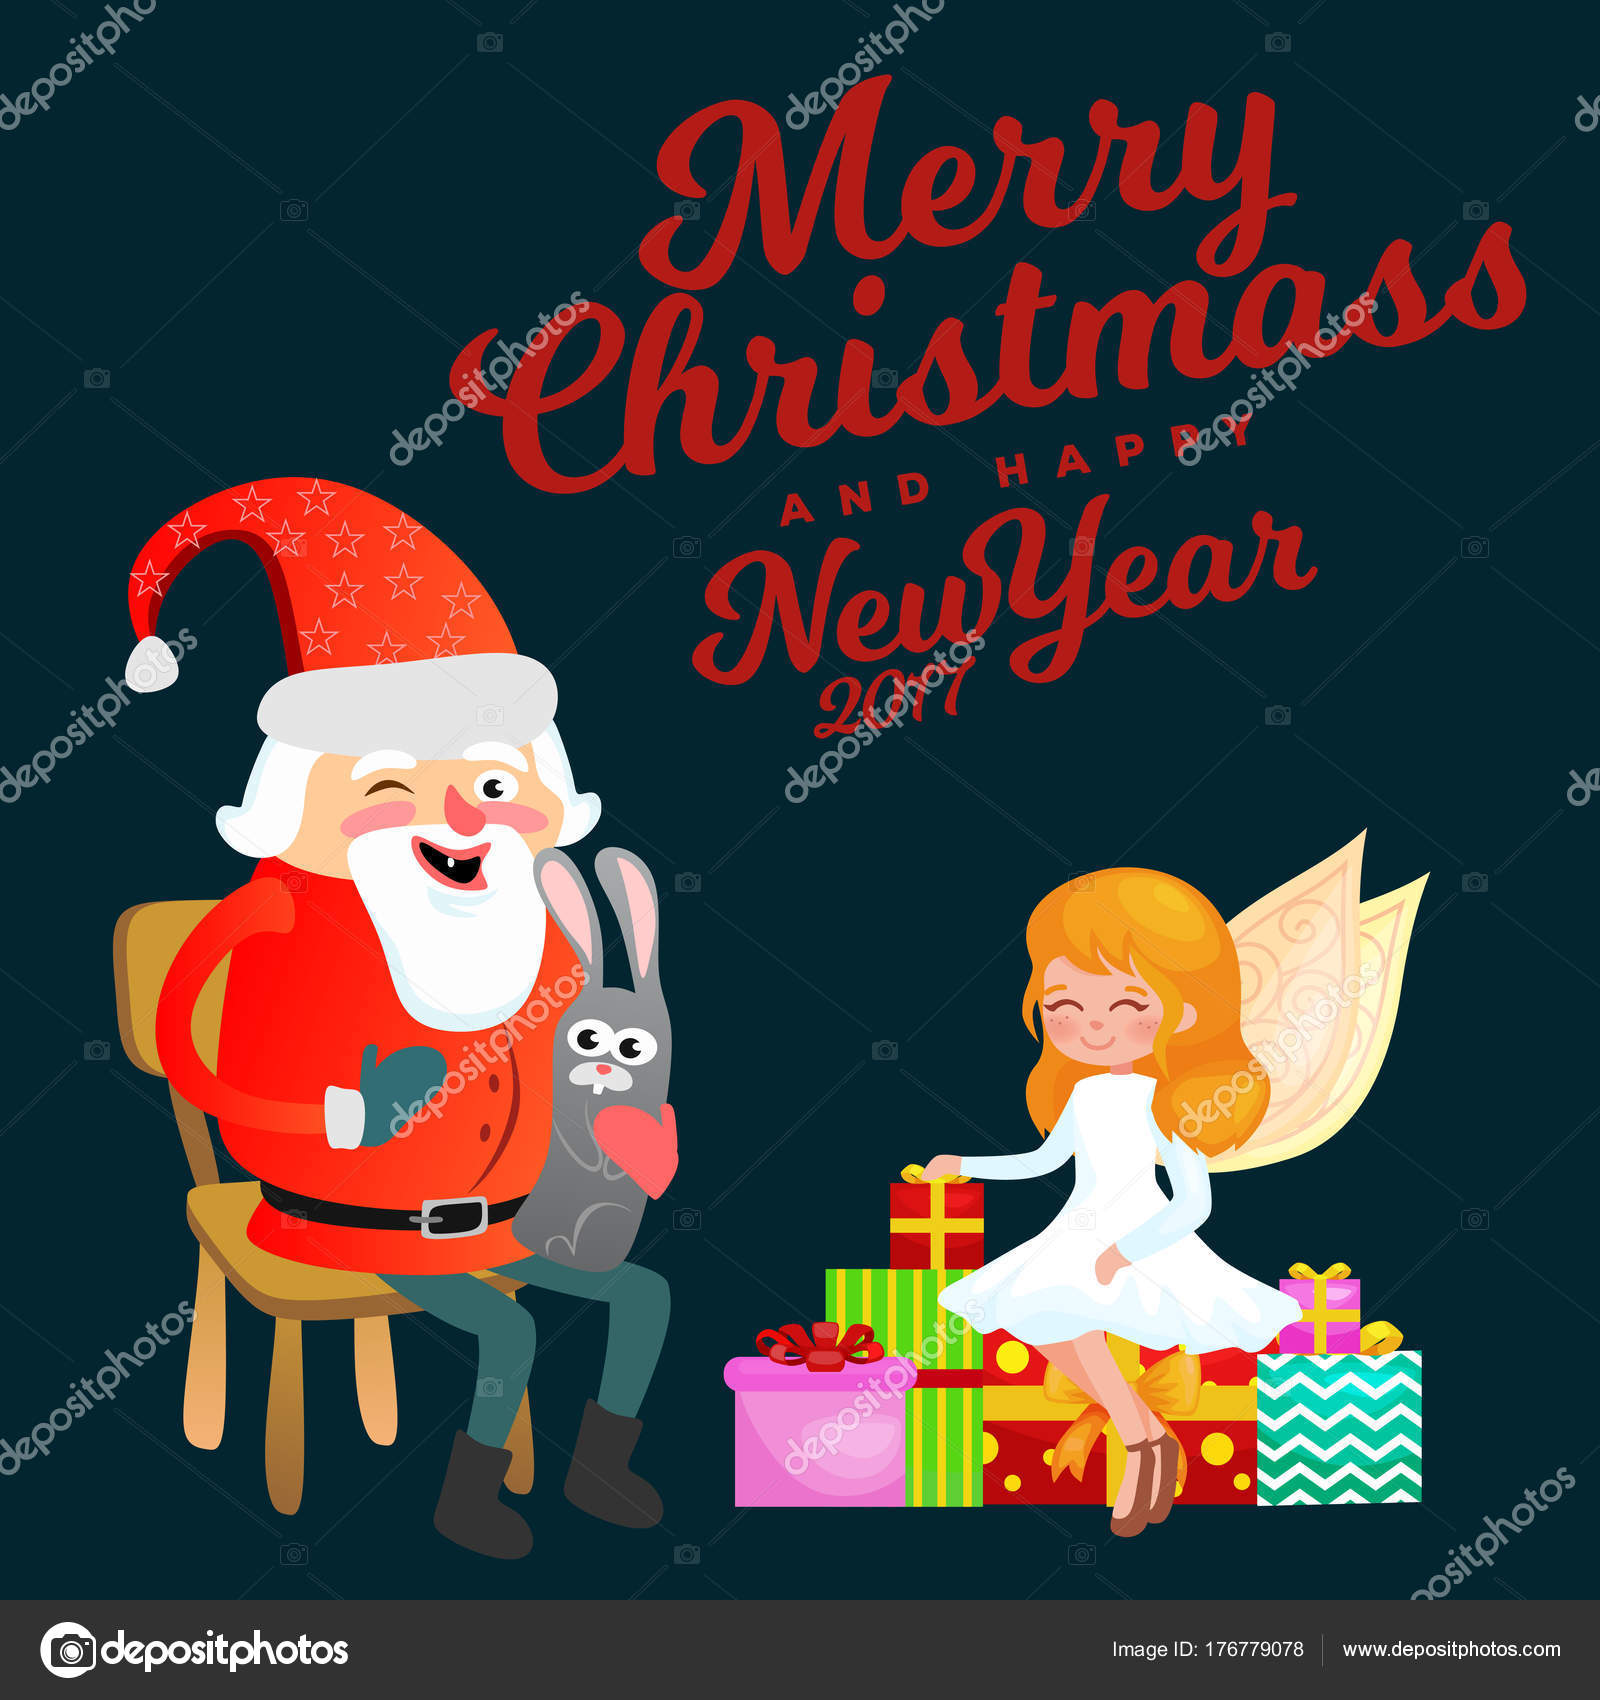 Santa claus in red hat with beard sits on chair with hare in hand santa claus in red hat with beard sits on chair with hare in hand which makes wish magic fairy with golden wings helps and prepares gifts m4hsunfo